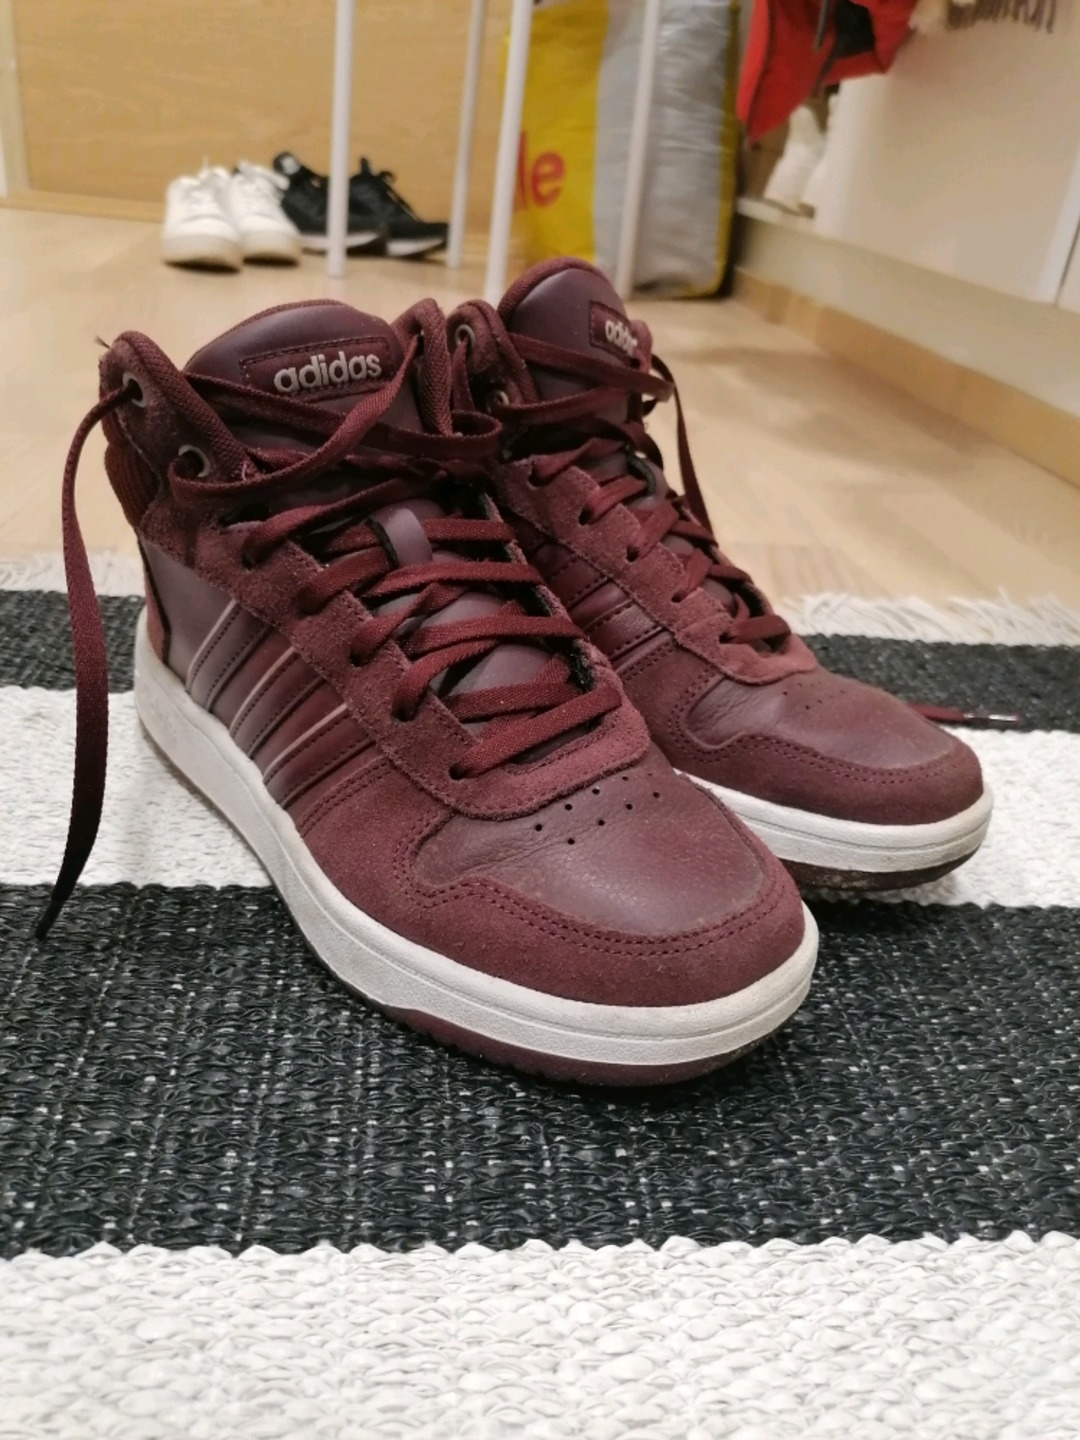 Women's sneakers - ADIDAS photo 1